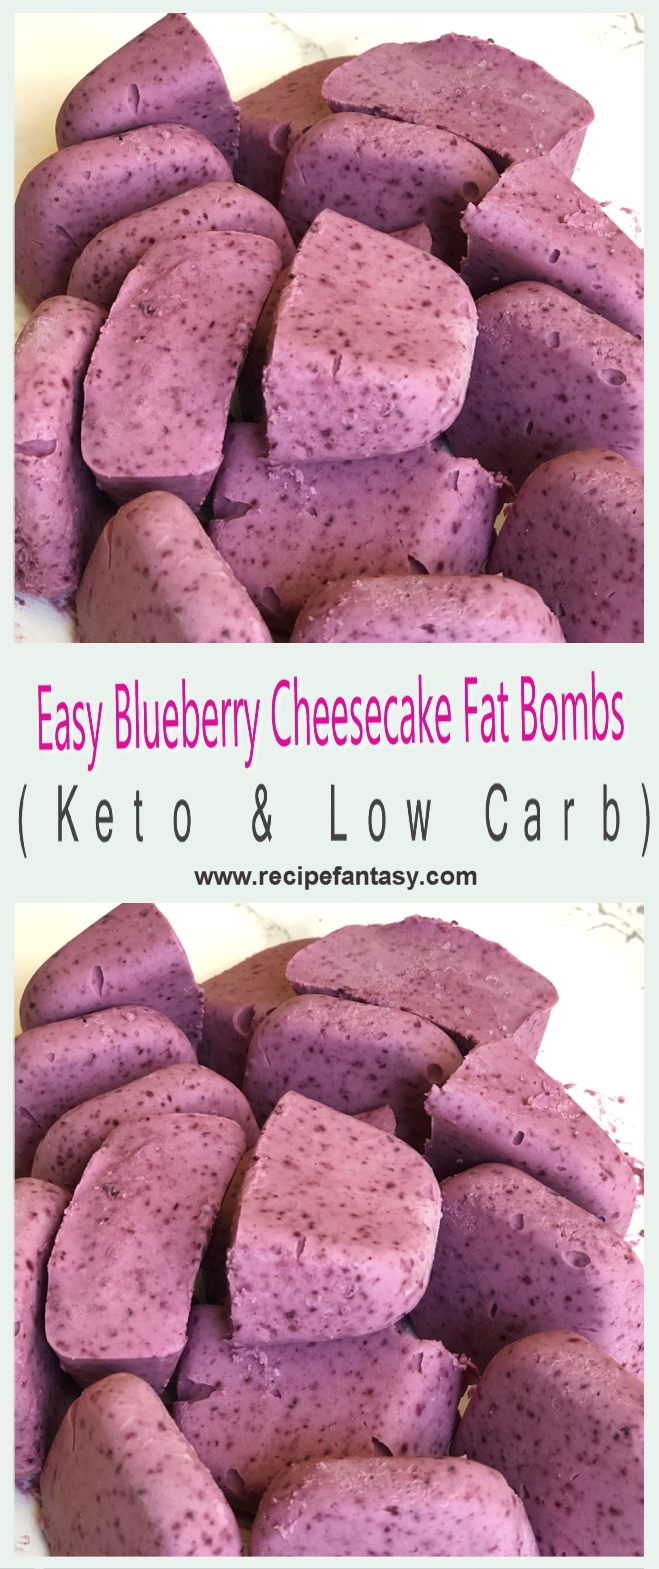 Easy Blueberry Cheesecake Fat Bombs (Keto & Low Carb)